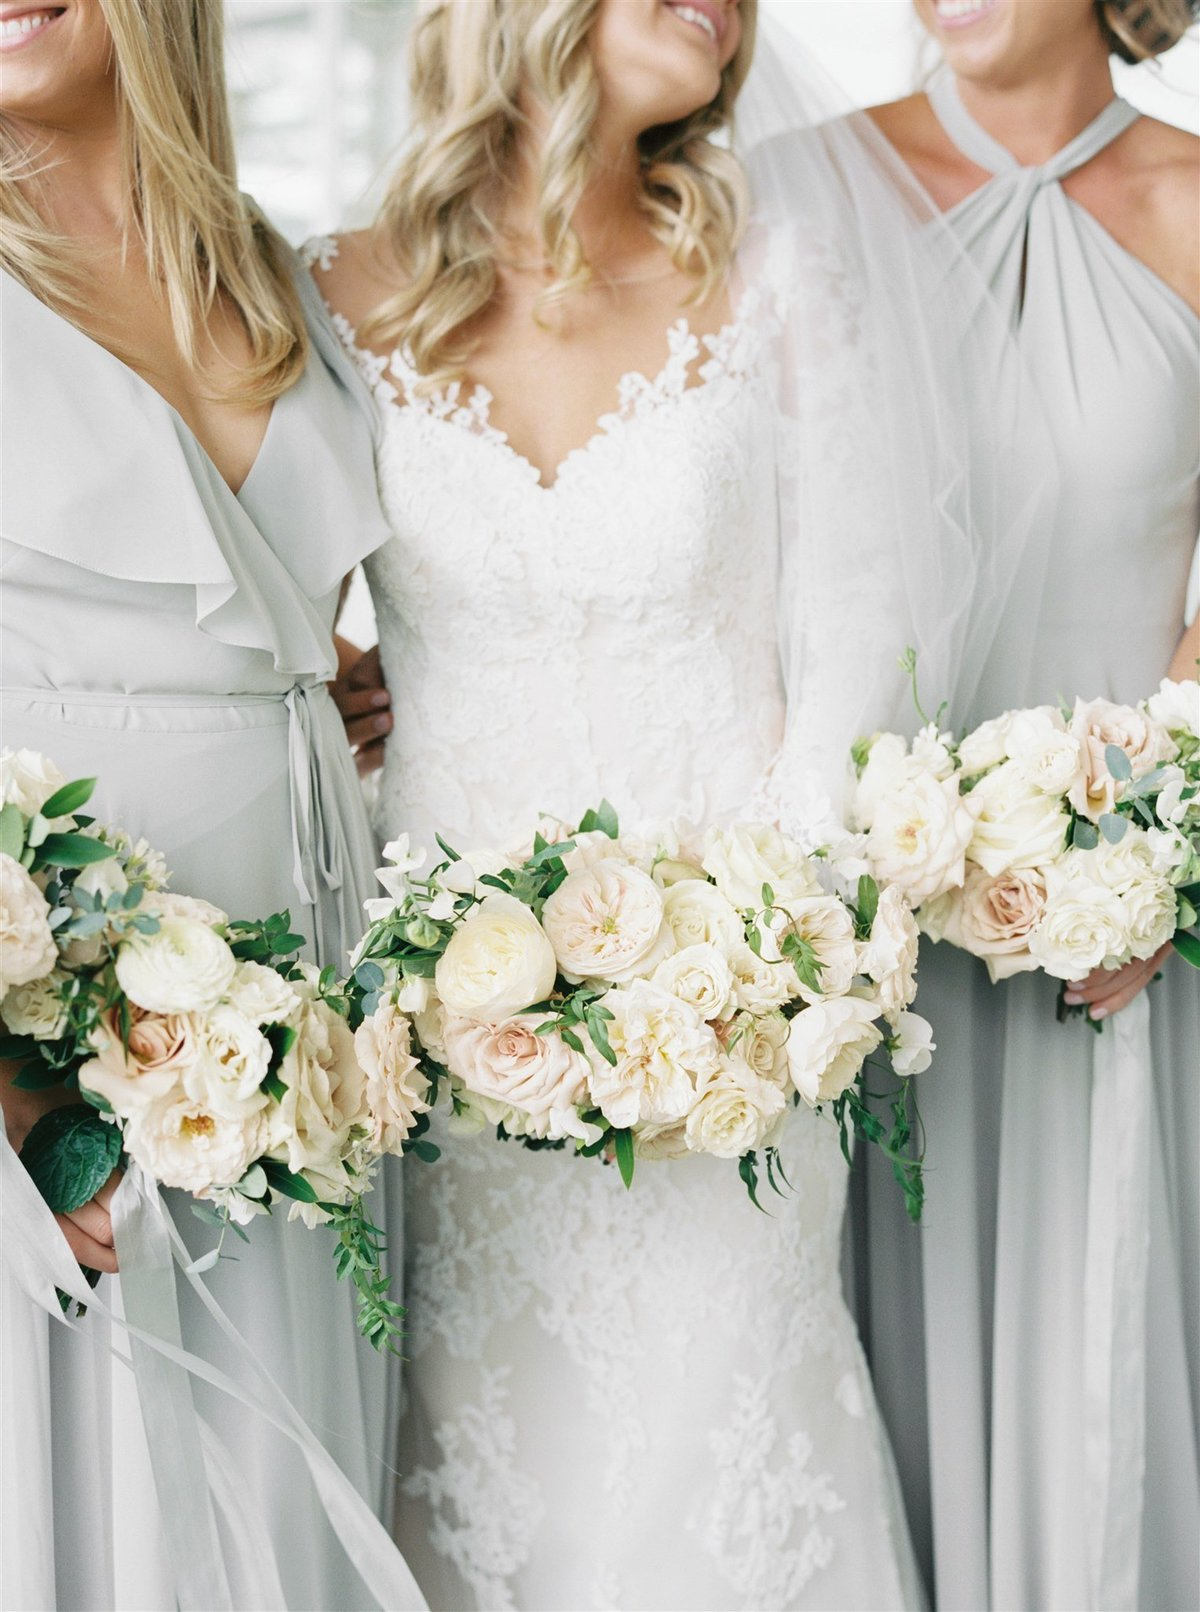 Garden inspired bouquets with gray bridesmaids dresses for a Cape Cod Wedding by luxury Cape Cod wedding planner and designer Always Yours Events